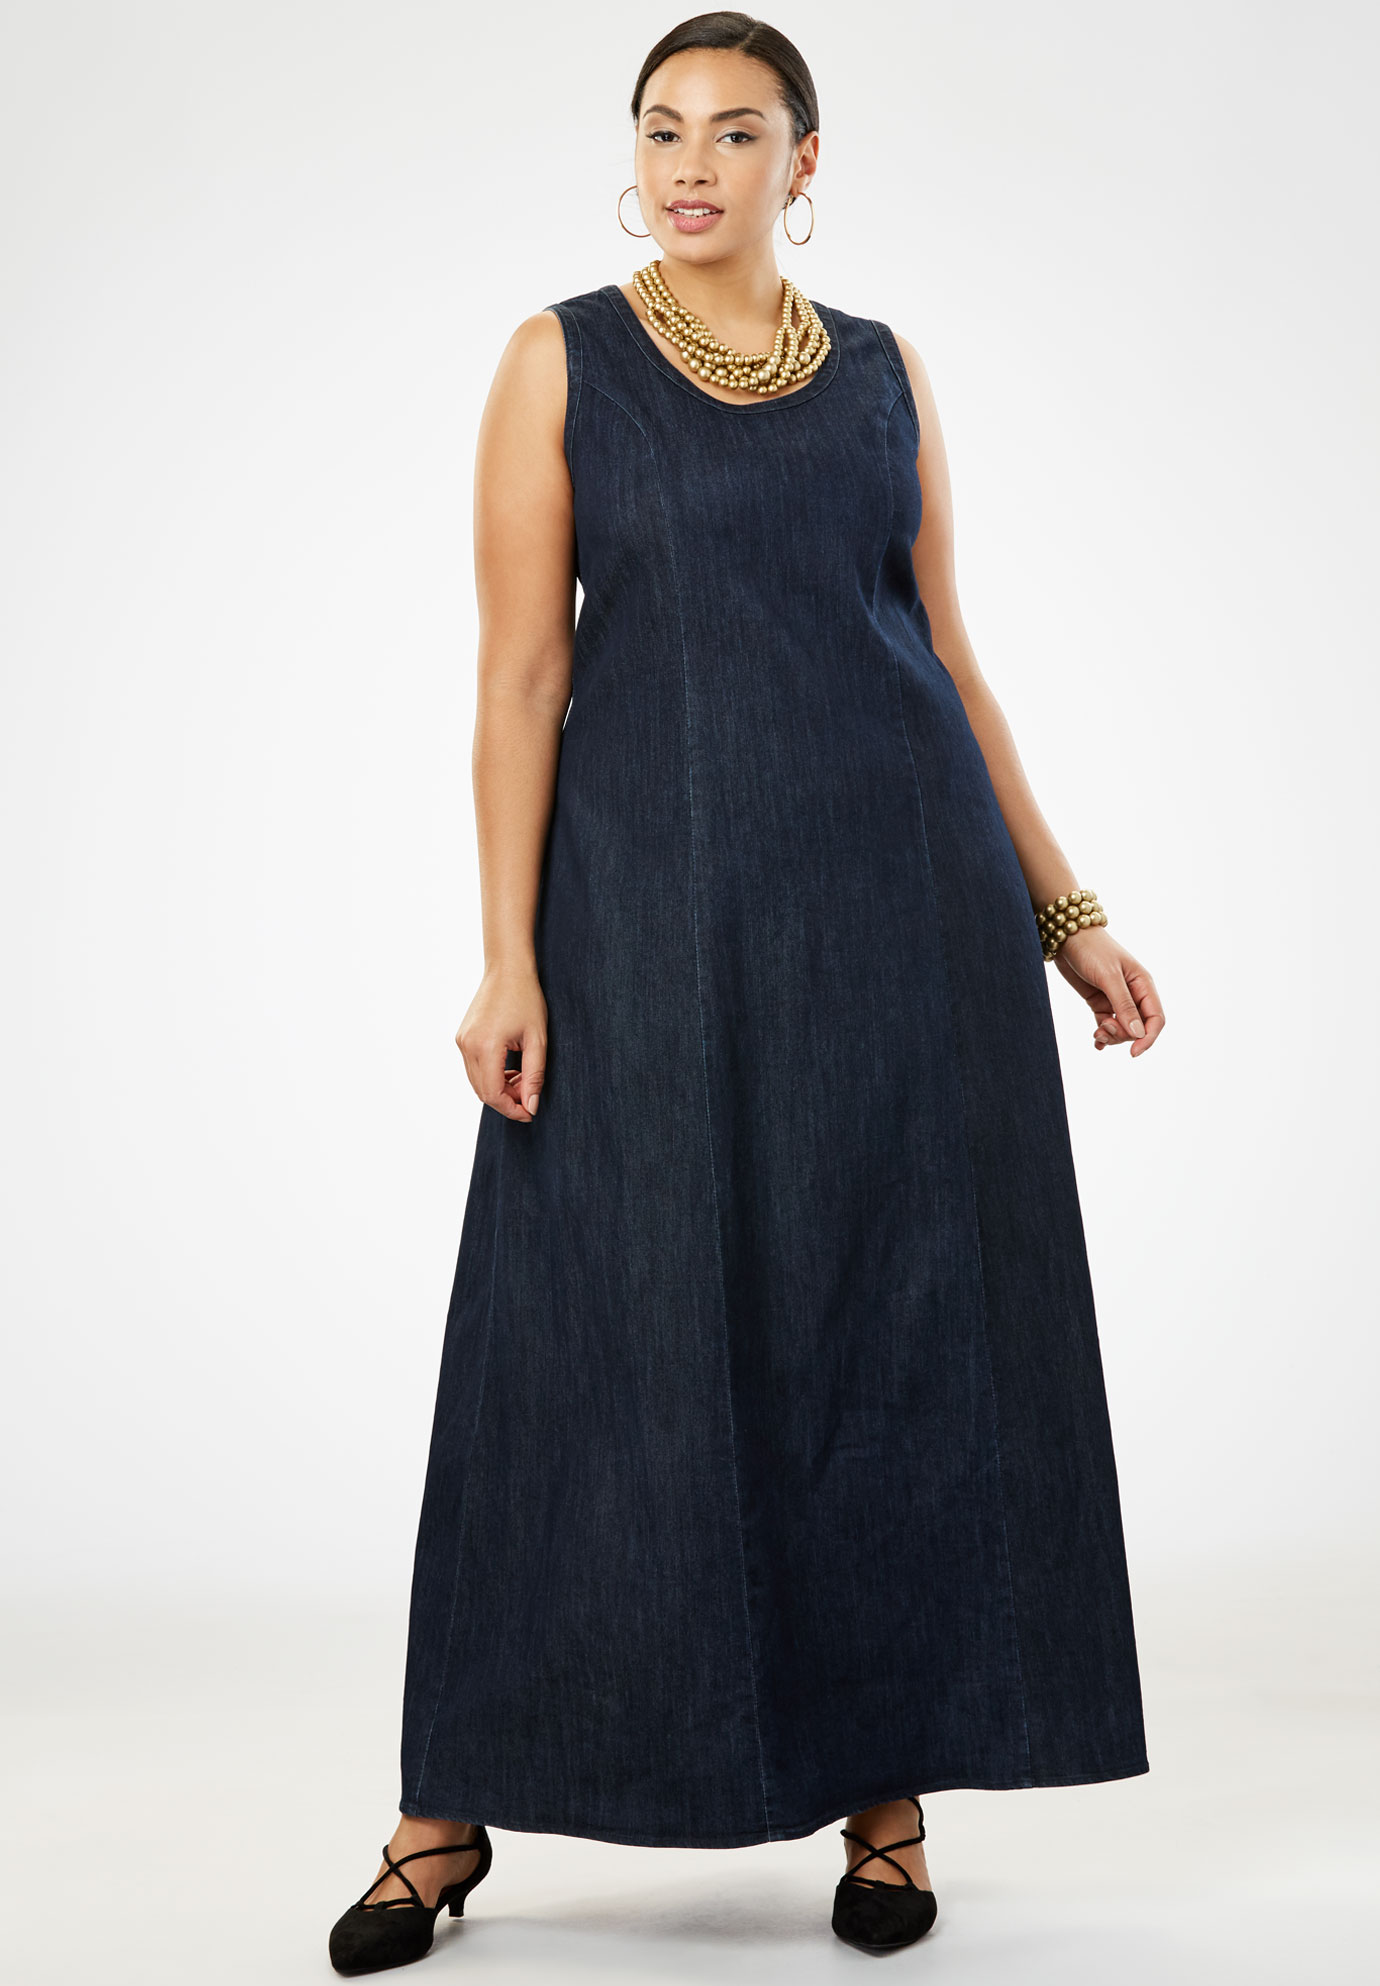 Denim Maxi Dress| Plus Size Dresses | Jessica London